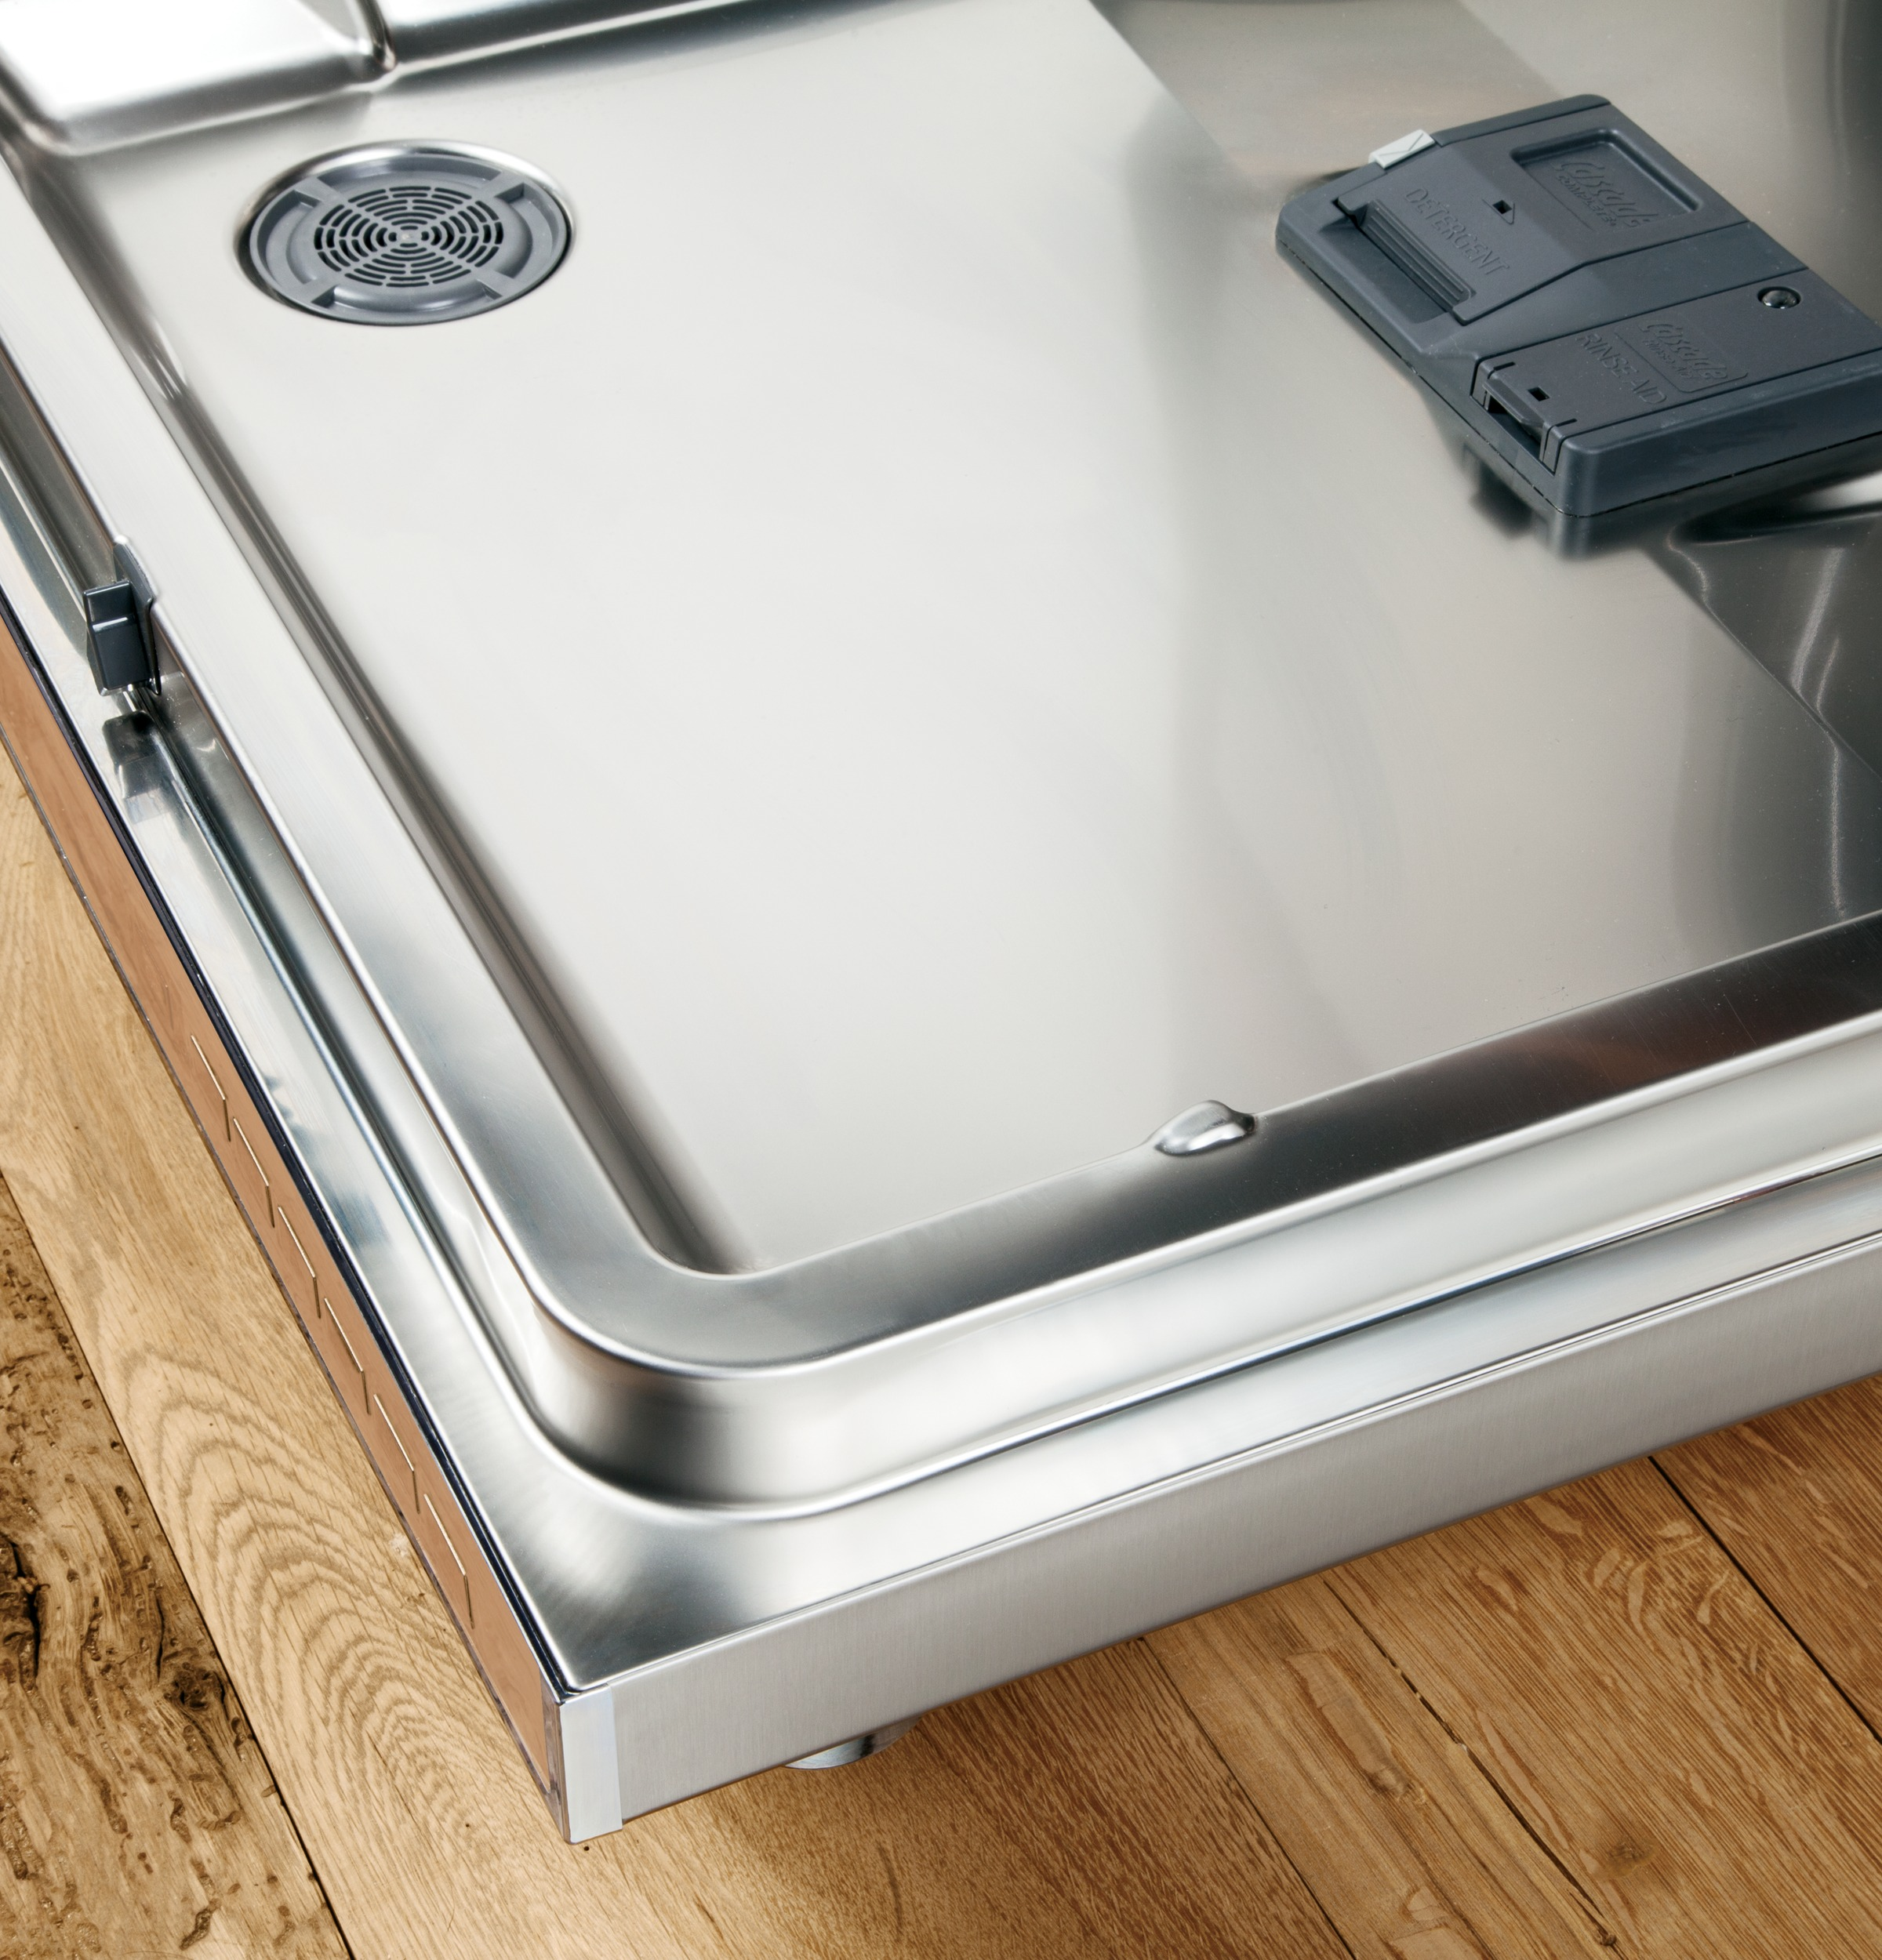 Model: GDT655SMJES | GE GE® Stainless Steel Interior Dishwasher with Hidden Controls